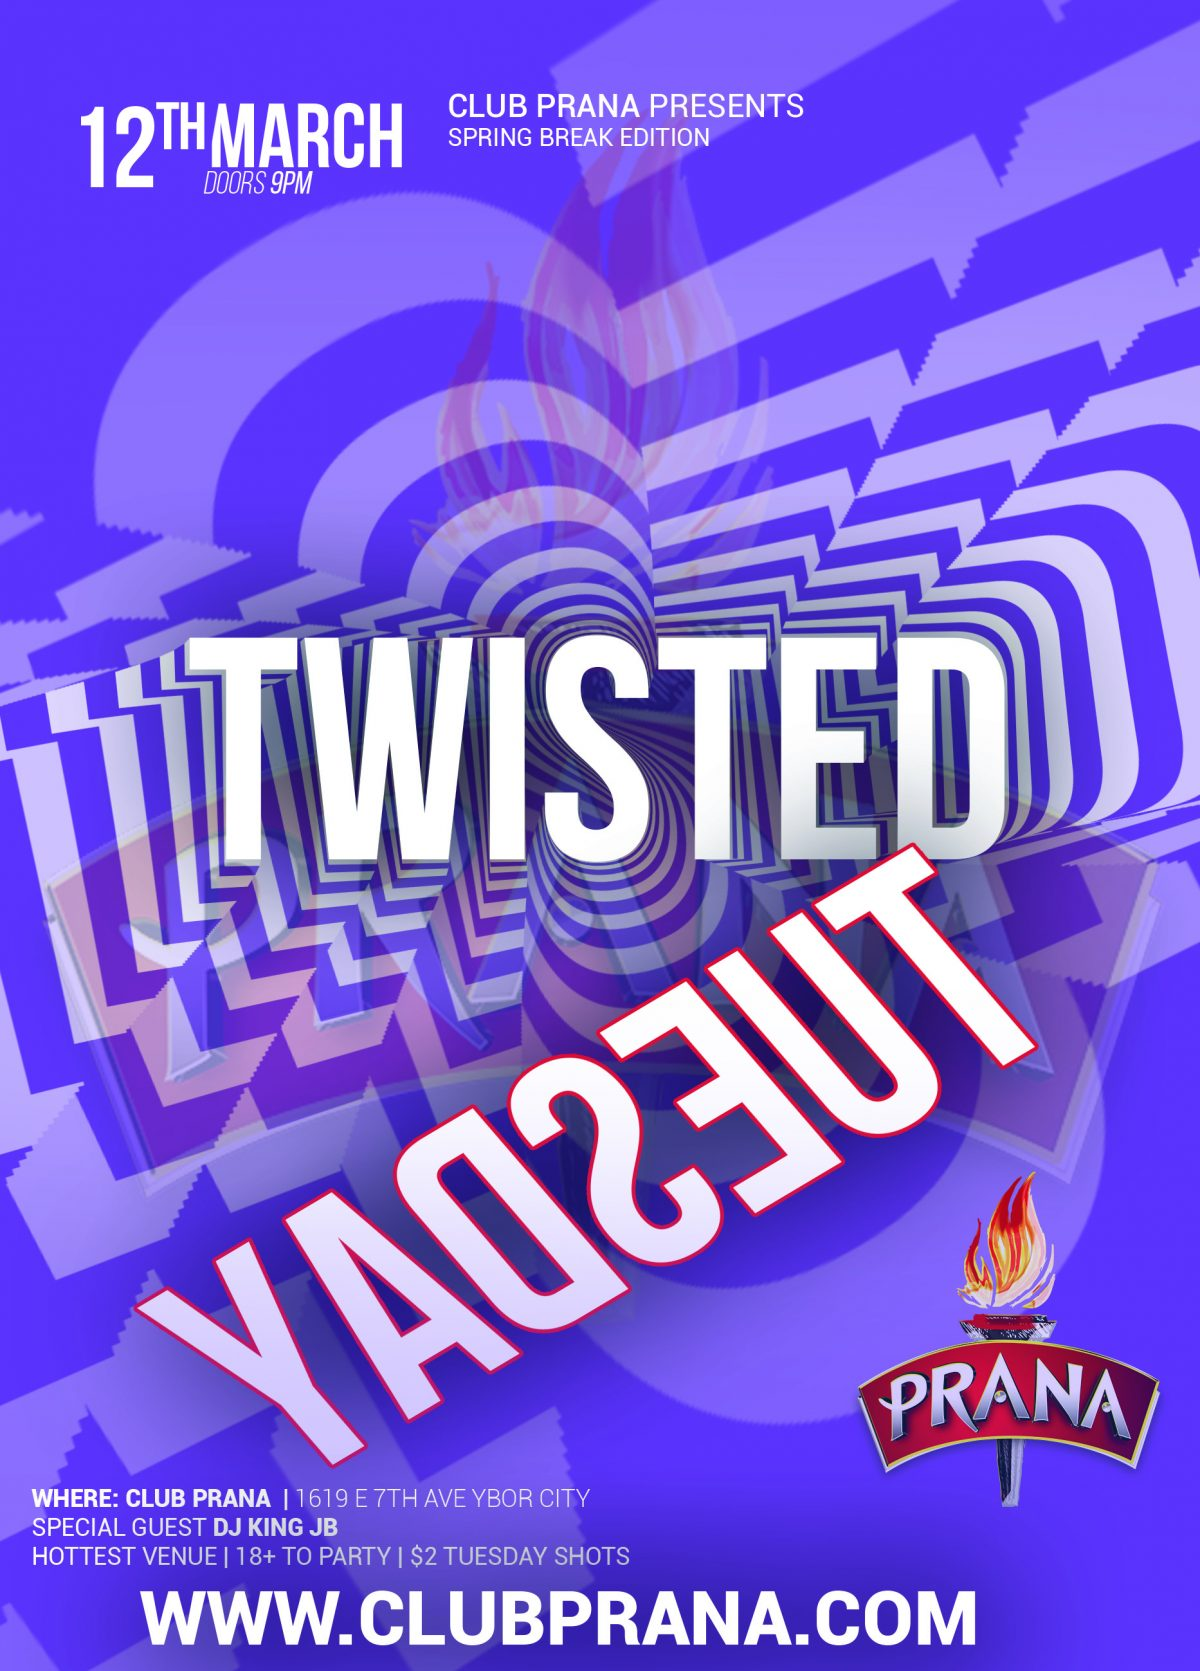 Twisted Tuesday: Spring Break Edition